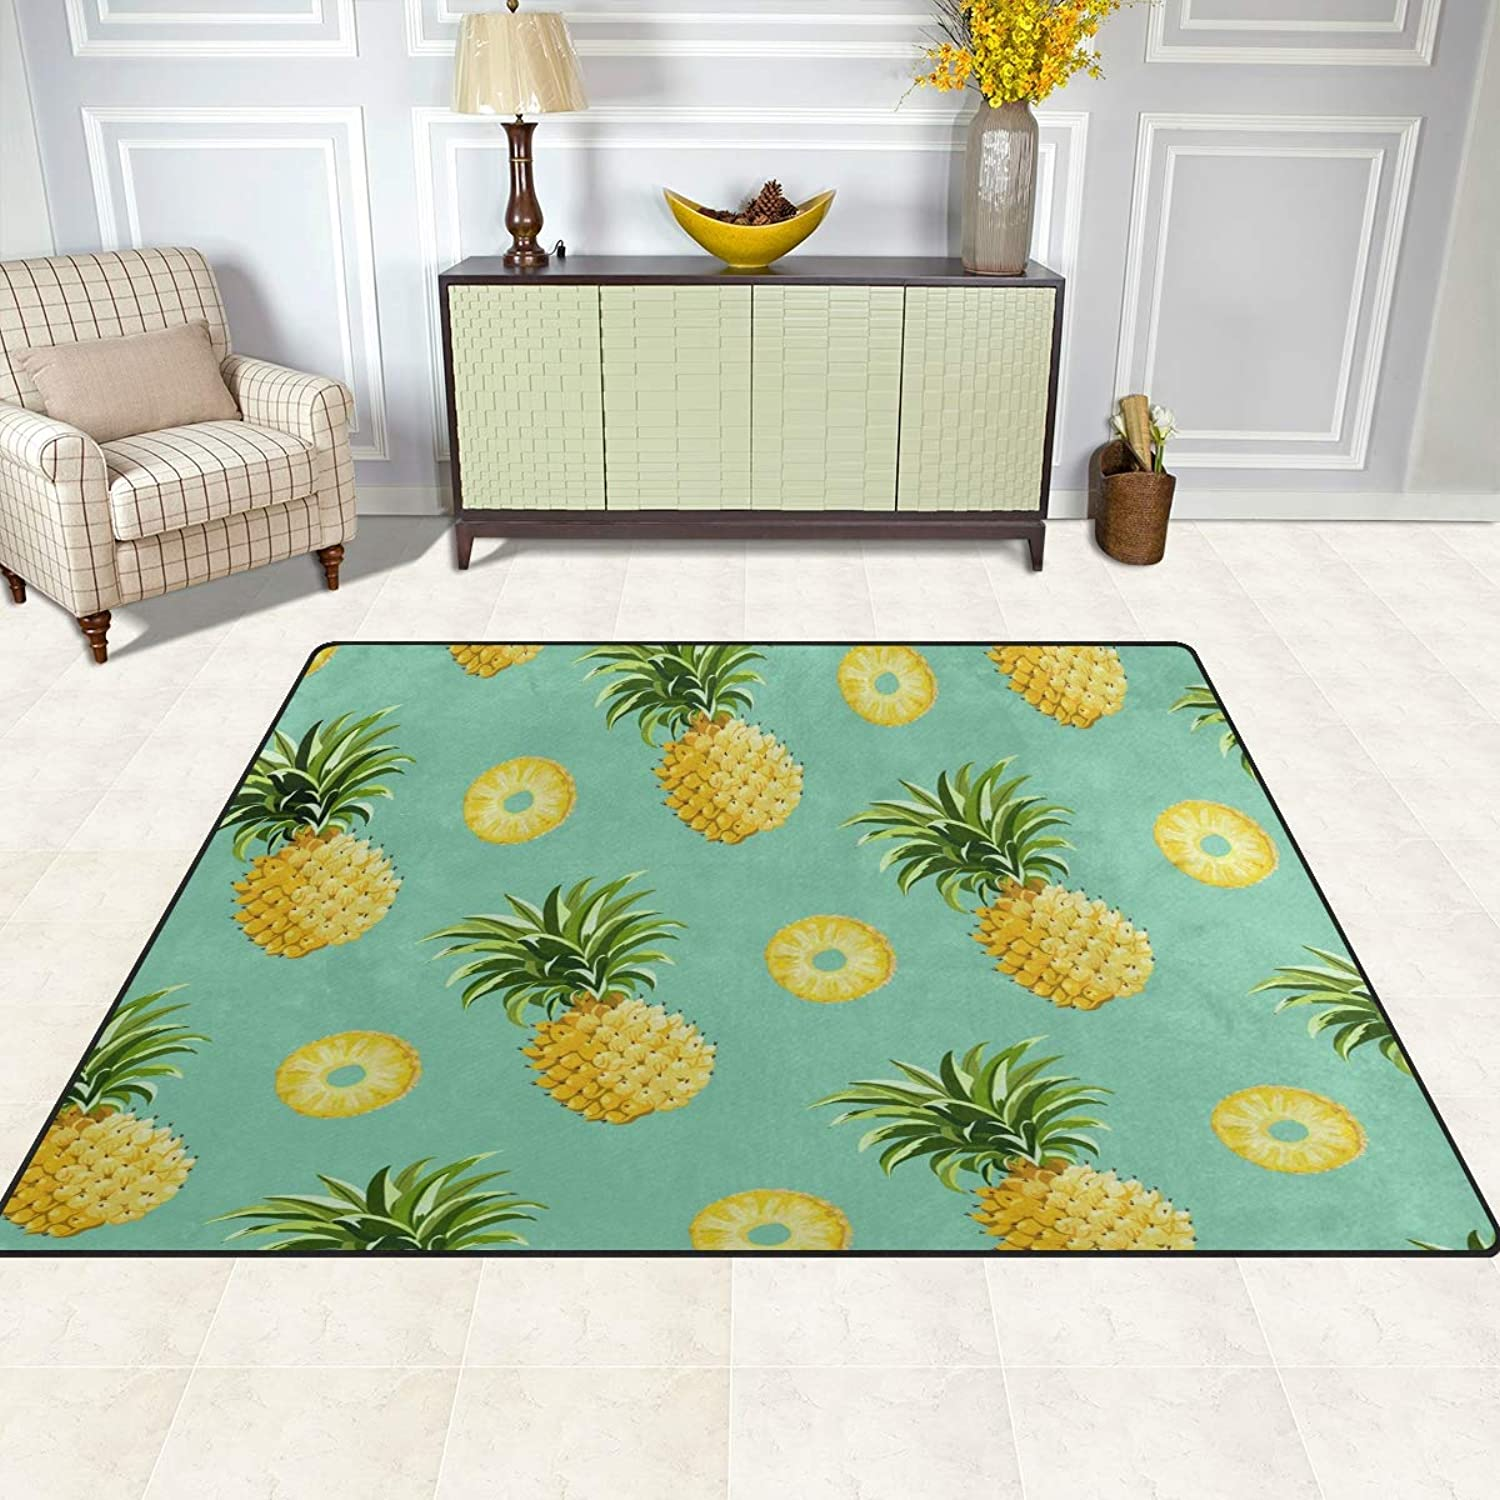 FAJRO Pineapple Painting Rugs for entryway Doormat Area Rug Multipattern Door Mat shoes Scraper Home Dec Anti-Slip Indoor Outdoor